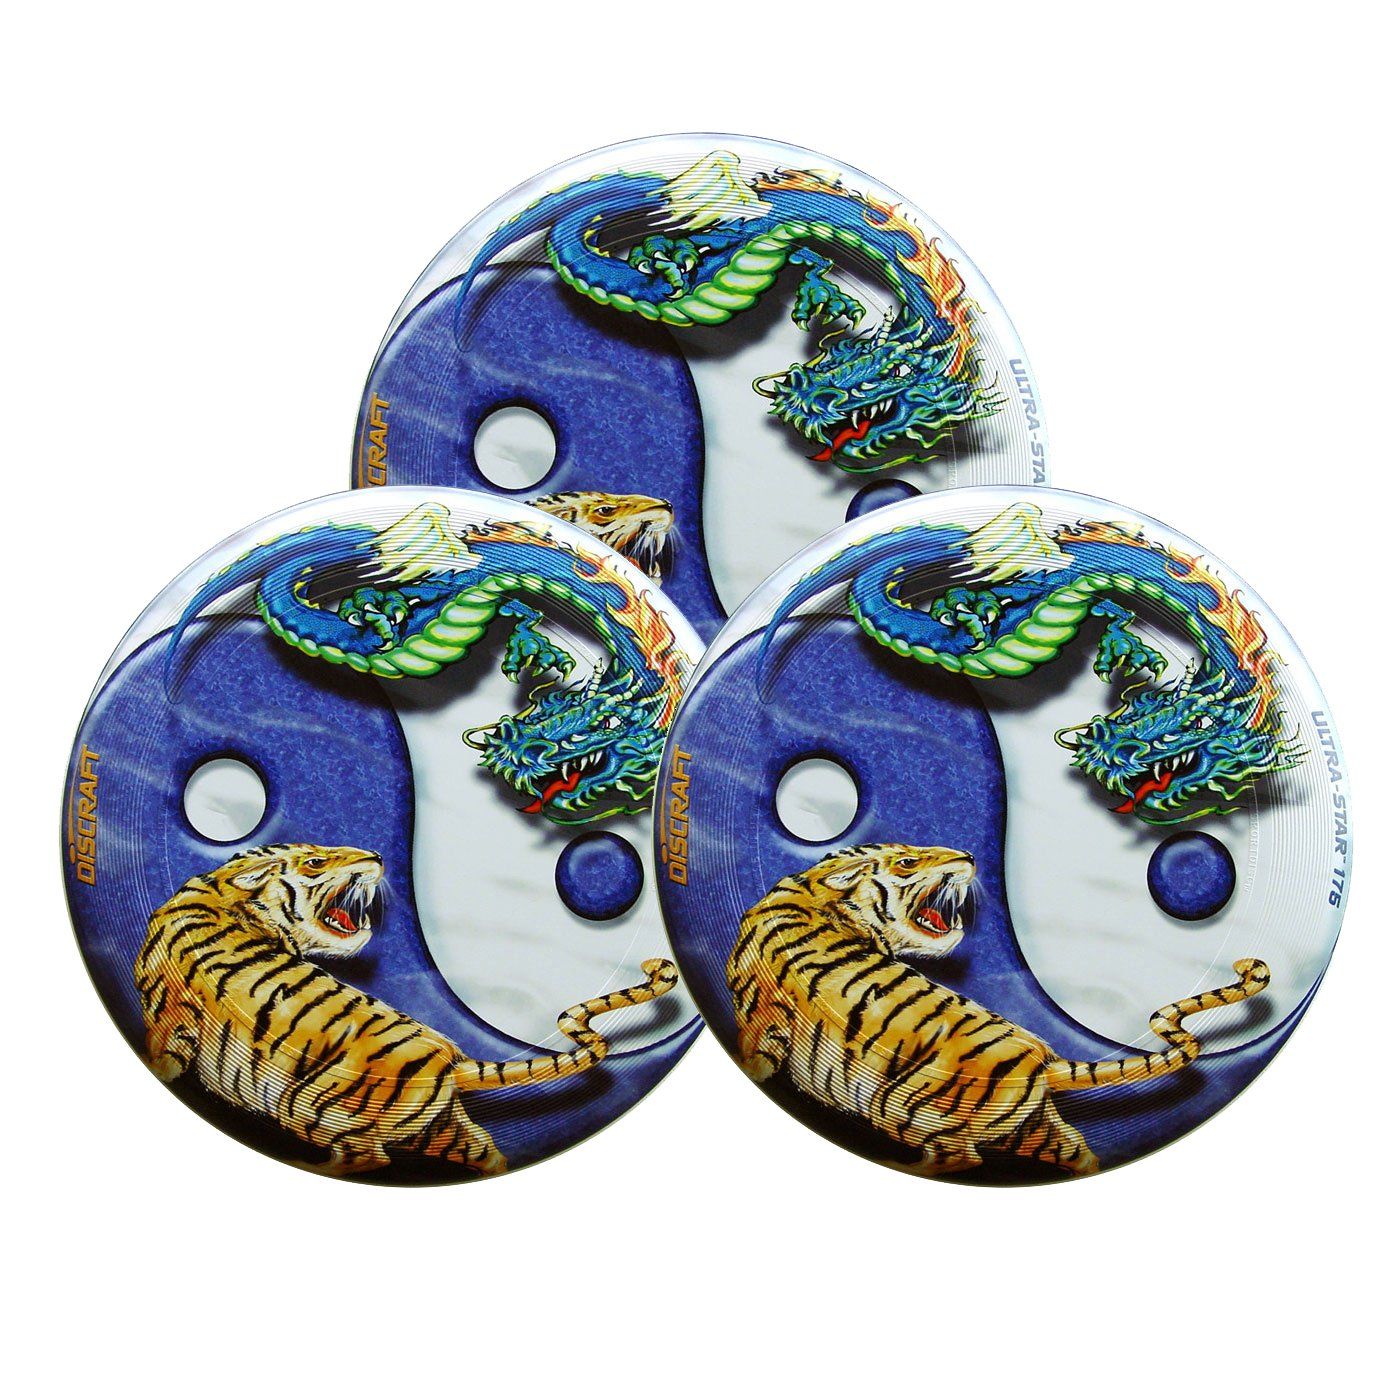 Discraft SuperColor Ultra-Star Yin Yang 175g Ultimate Sportdisc (3 Pack) by Discraft